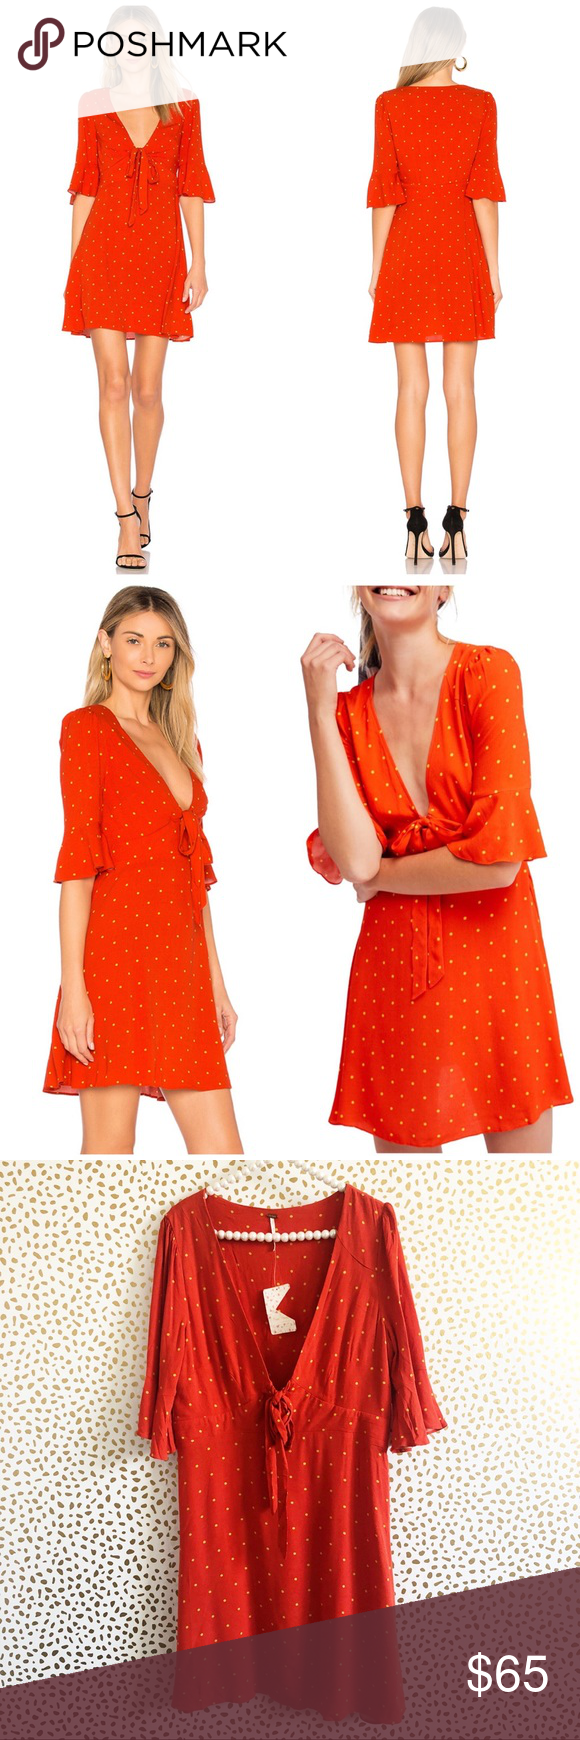 210ec9c065e New Free People All Yours Polka Dot Mini Dress Brand new with tags! Size  12. Red orange. 100% rayon Unlined Tie front closure Hidden side zipper  closure ...